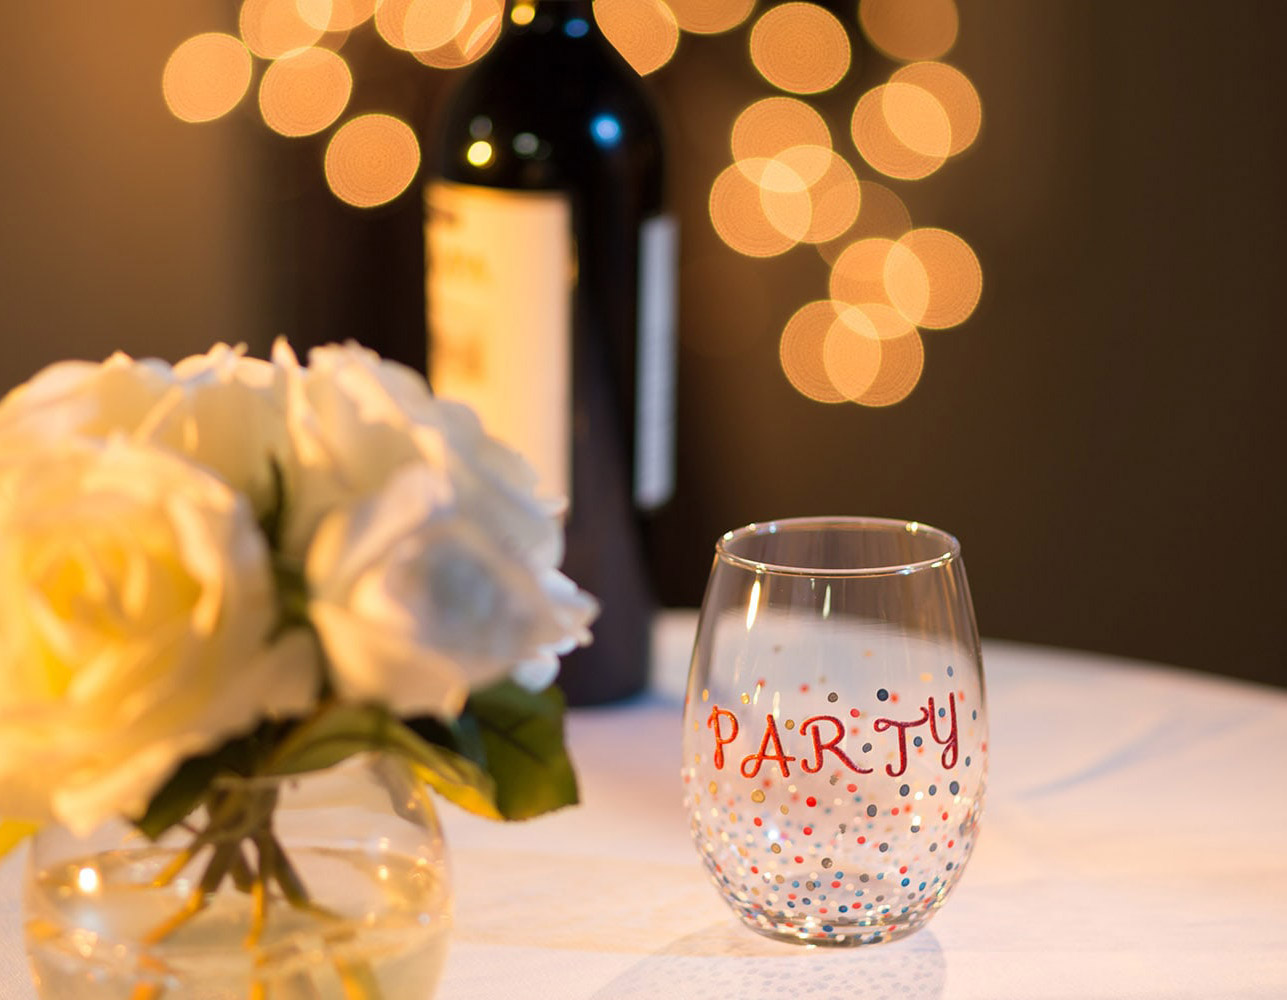 decorate your own stemless wine glass with testors craft paint